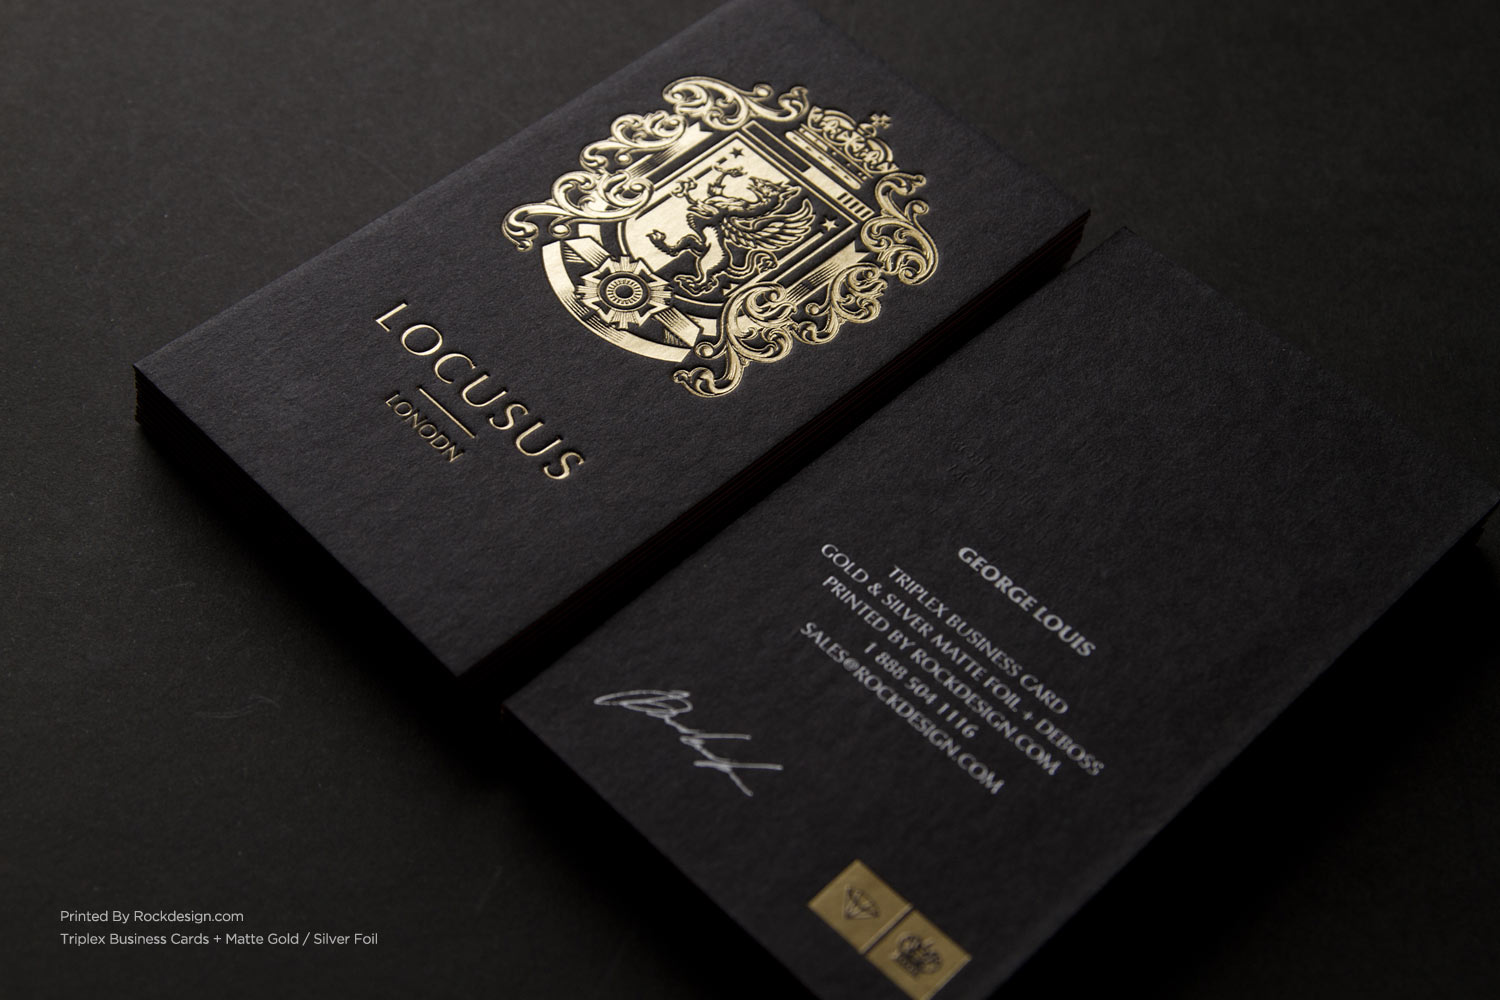 Urgent Business Cards Printing At Cheap Price In Dubai